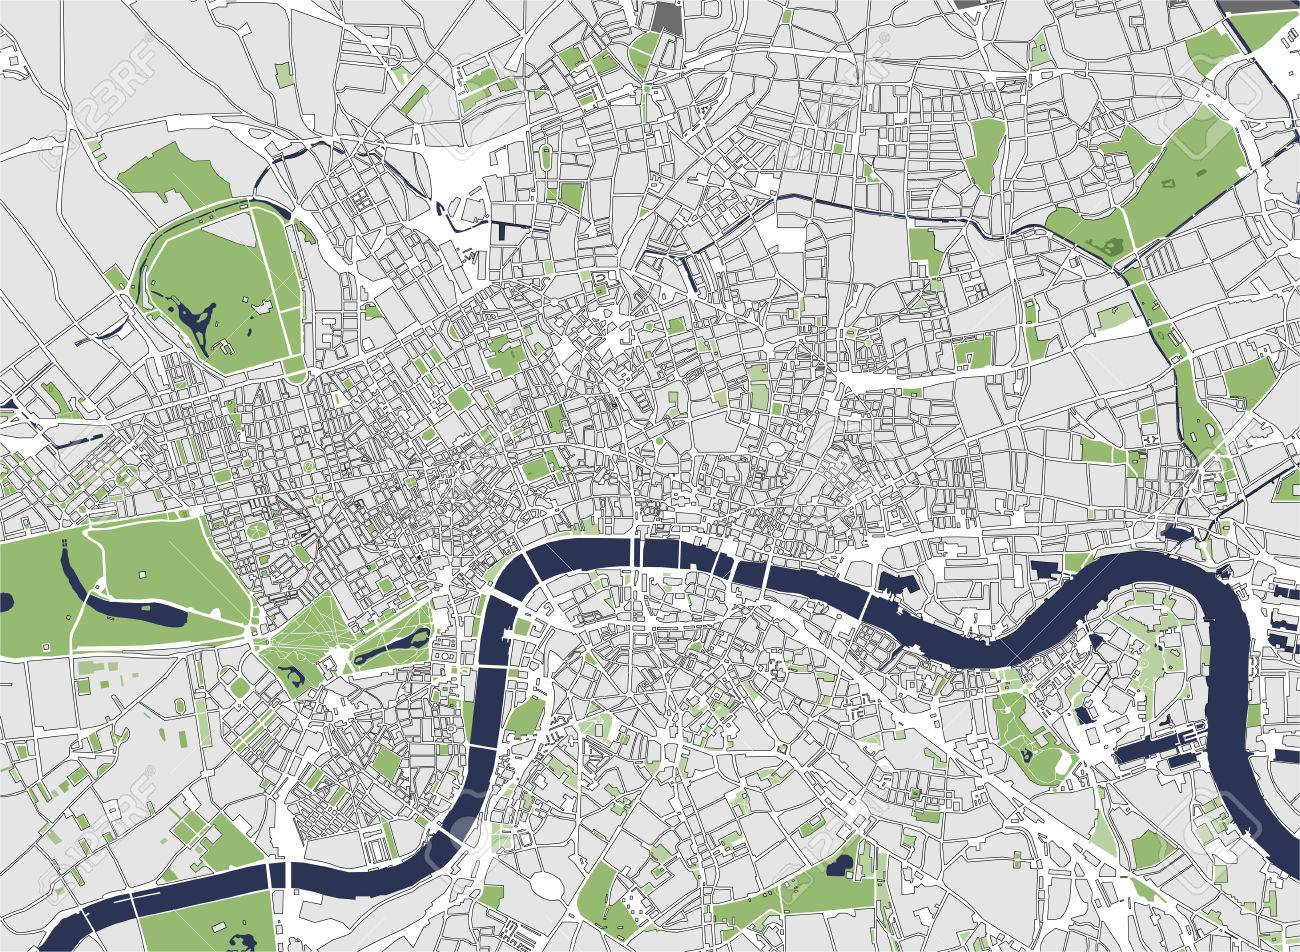 Map Of The City Of London.Vector Map Of The City Of London Great Britain